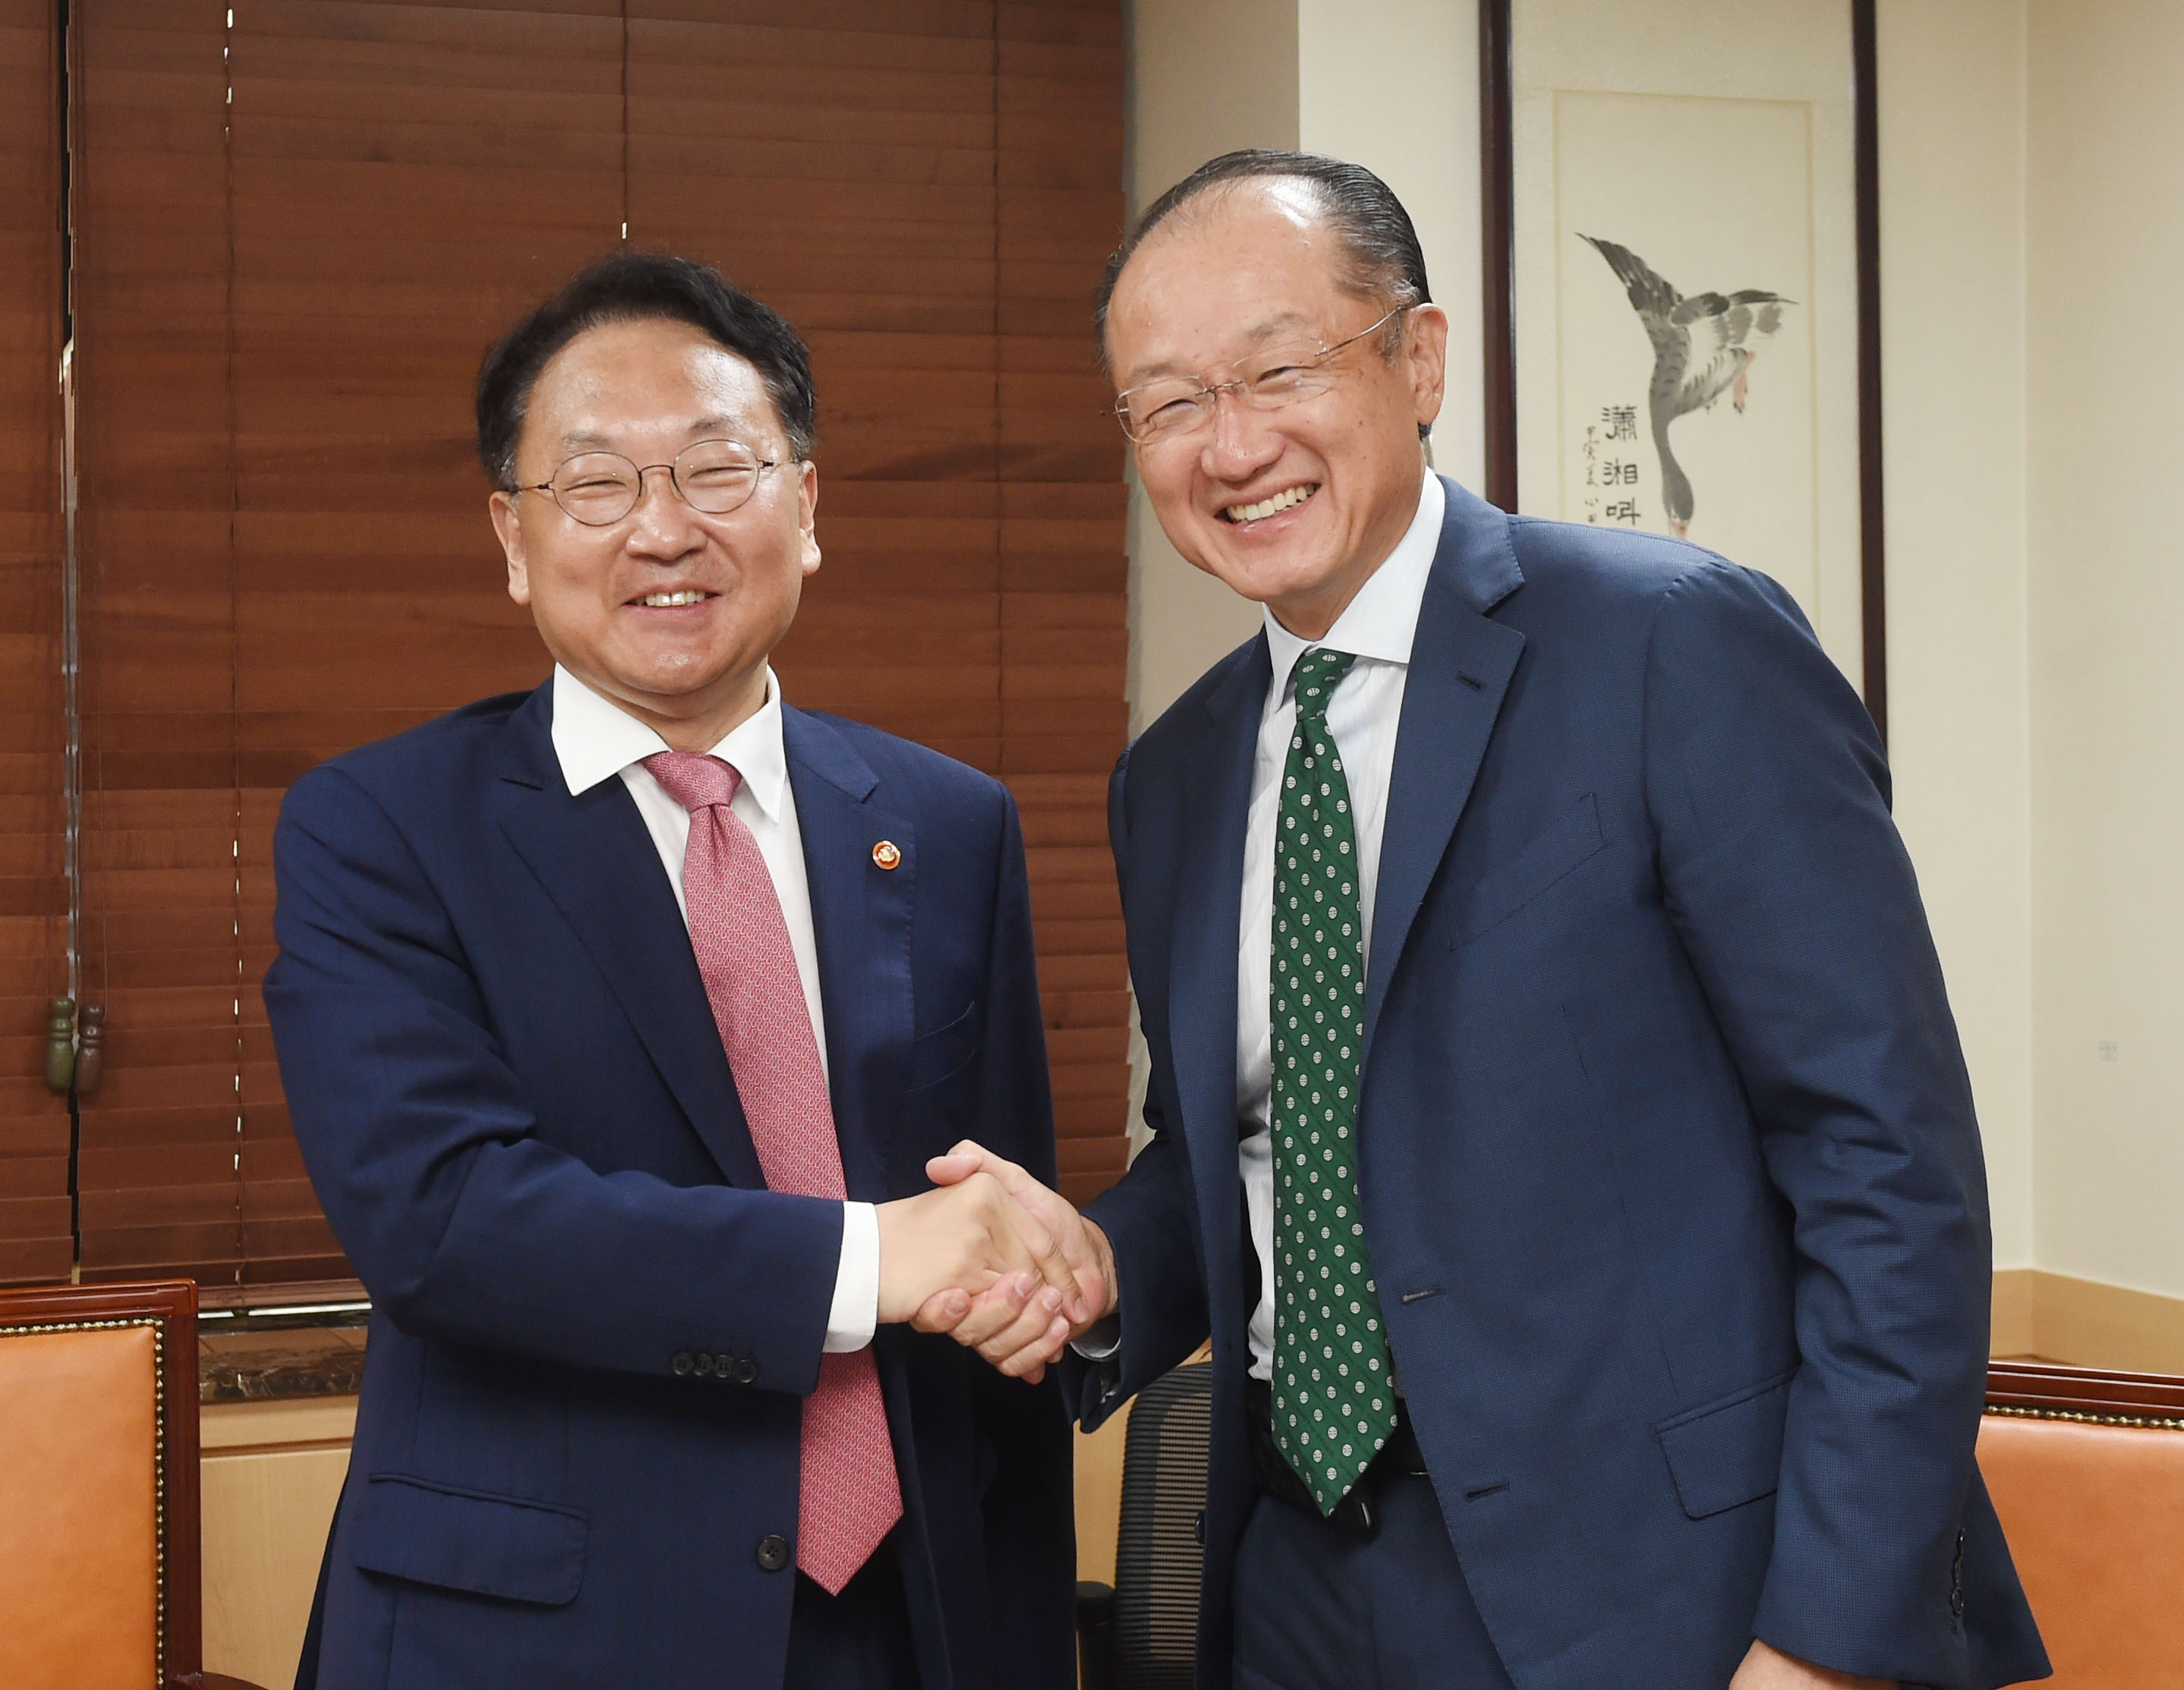 Deputy Prime Minister Yoo meets with World Bank Group President Jim Yong Kim